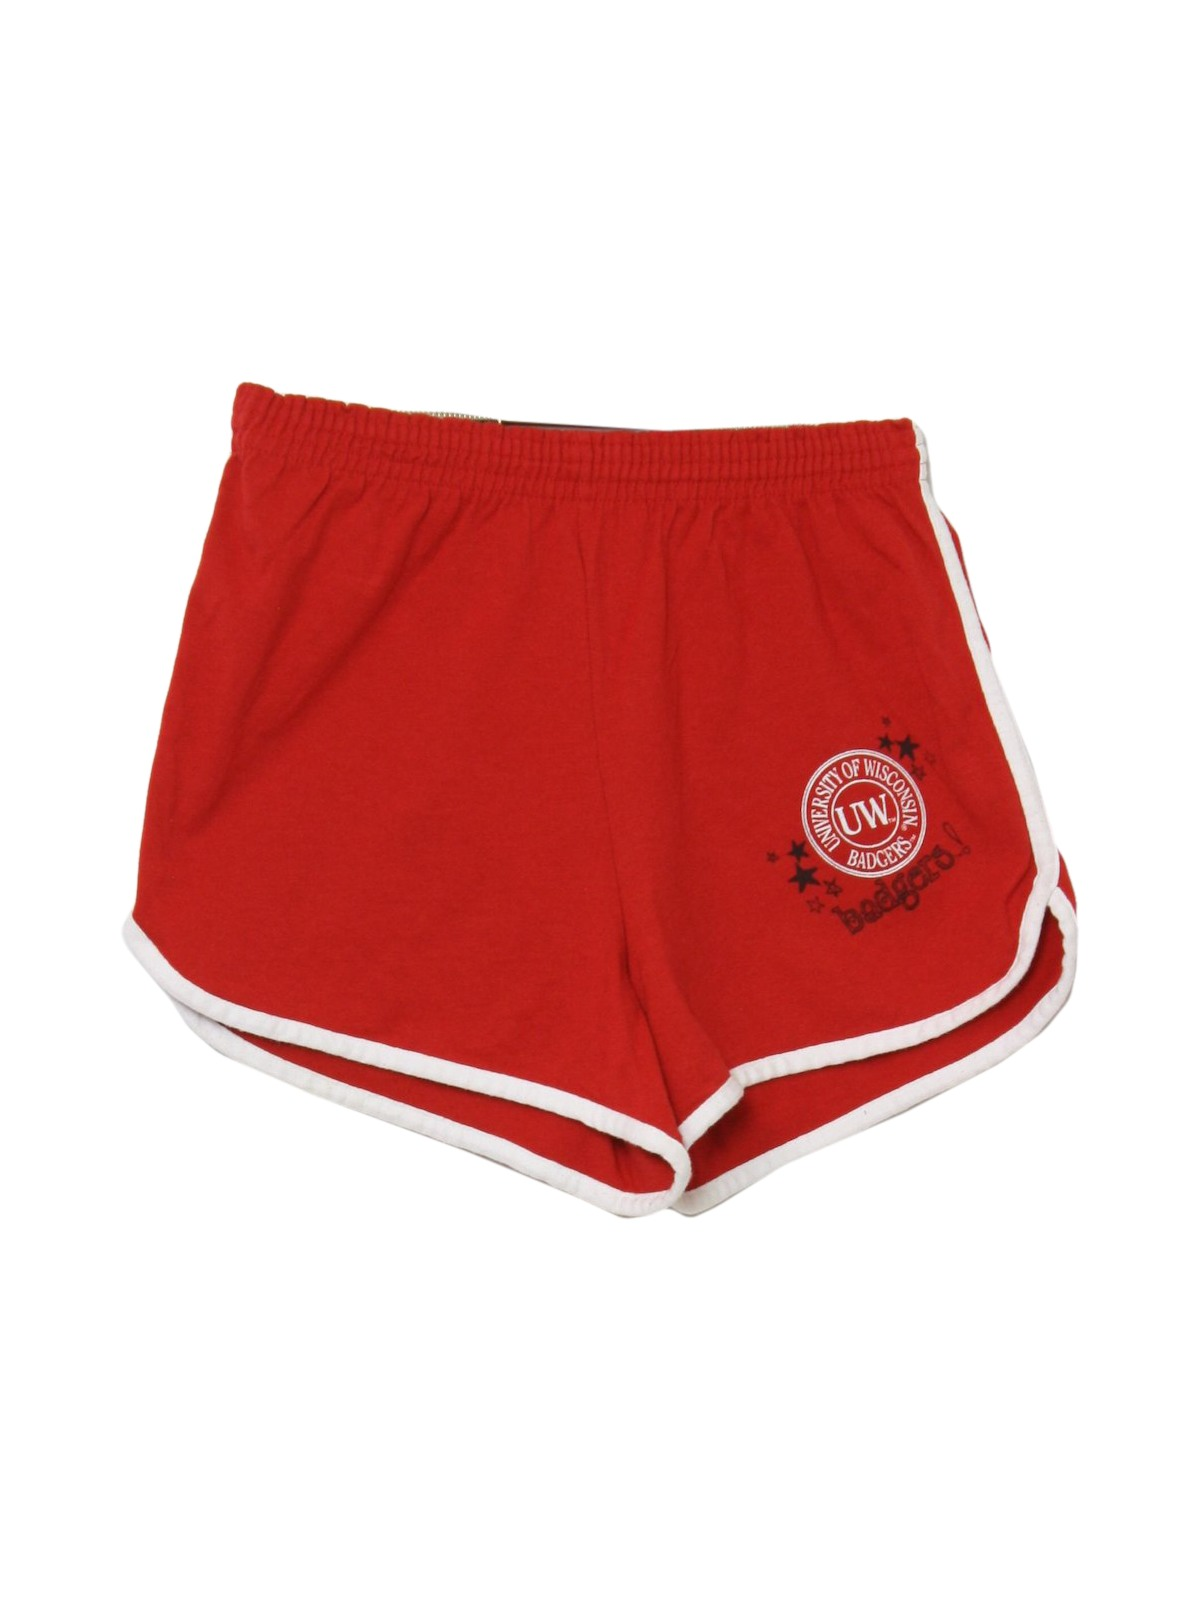 1990's Shorts (Soffe): 90s -Soffe- Womens red polyester and cotton ...